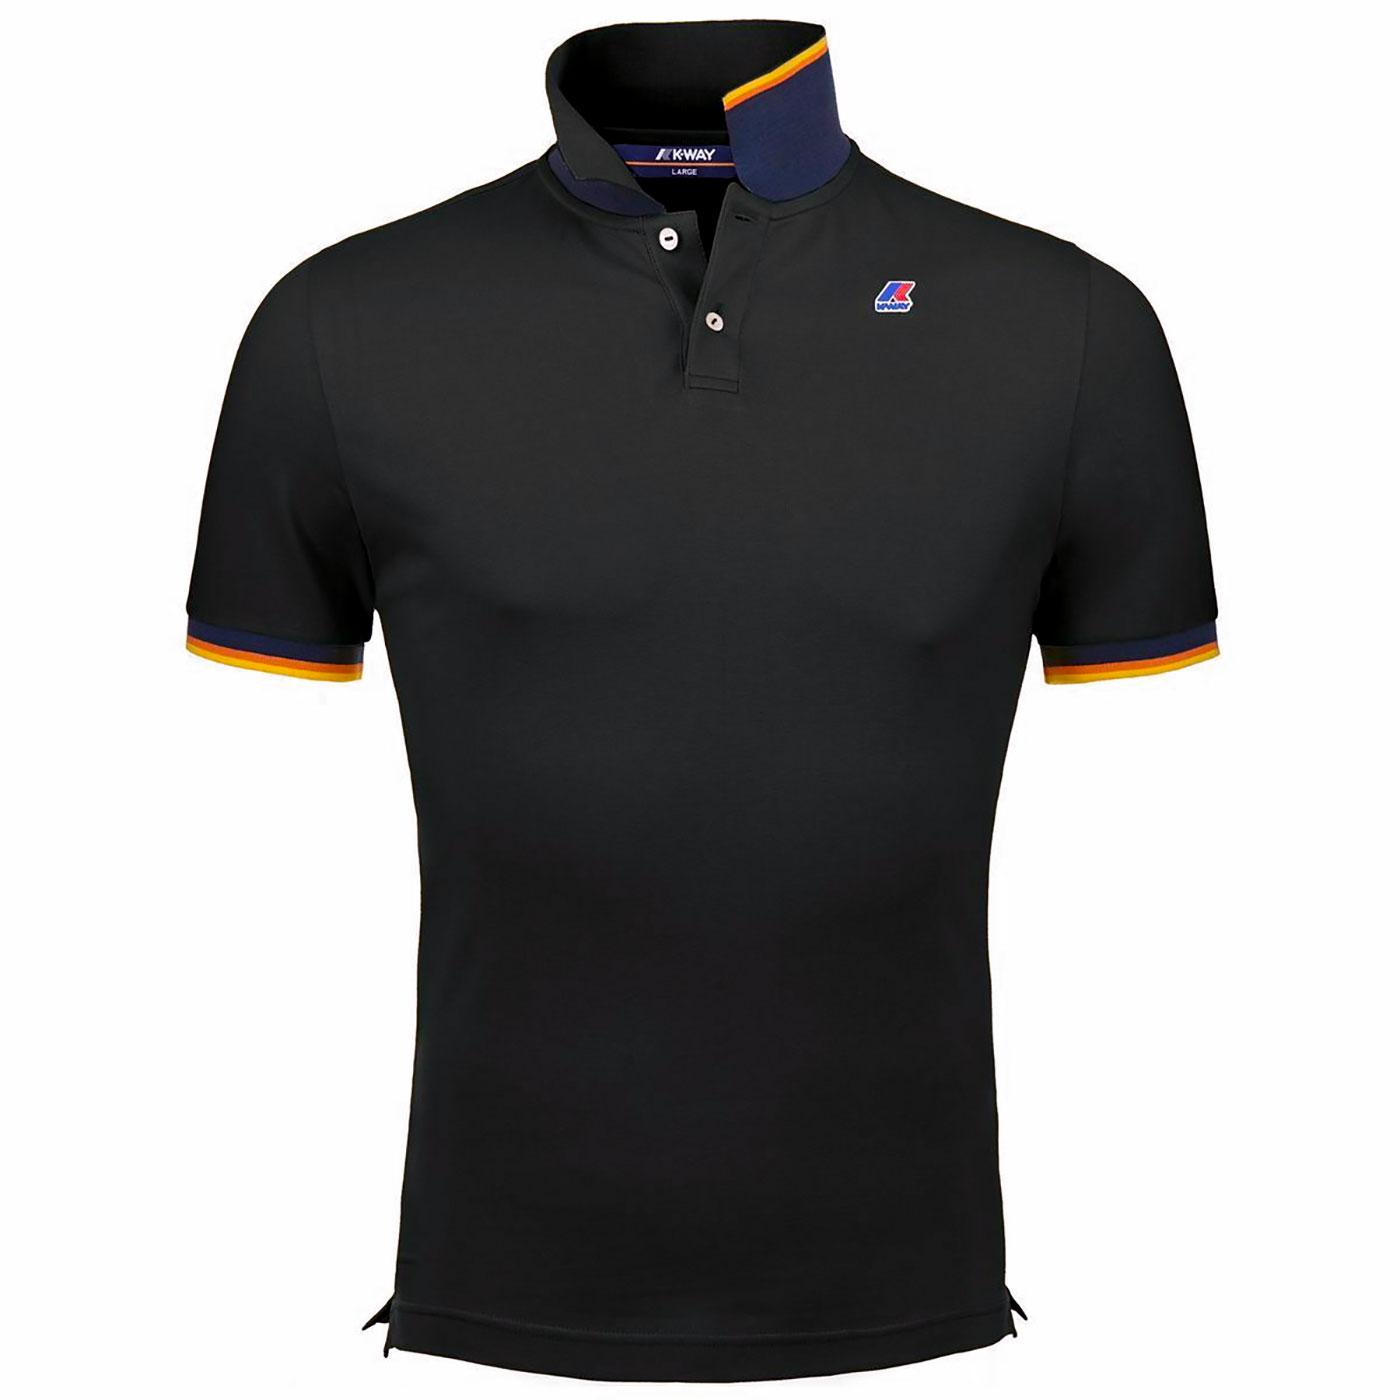 Vincent K-WAY Retro Mod Pique Polo Shirt (Black)